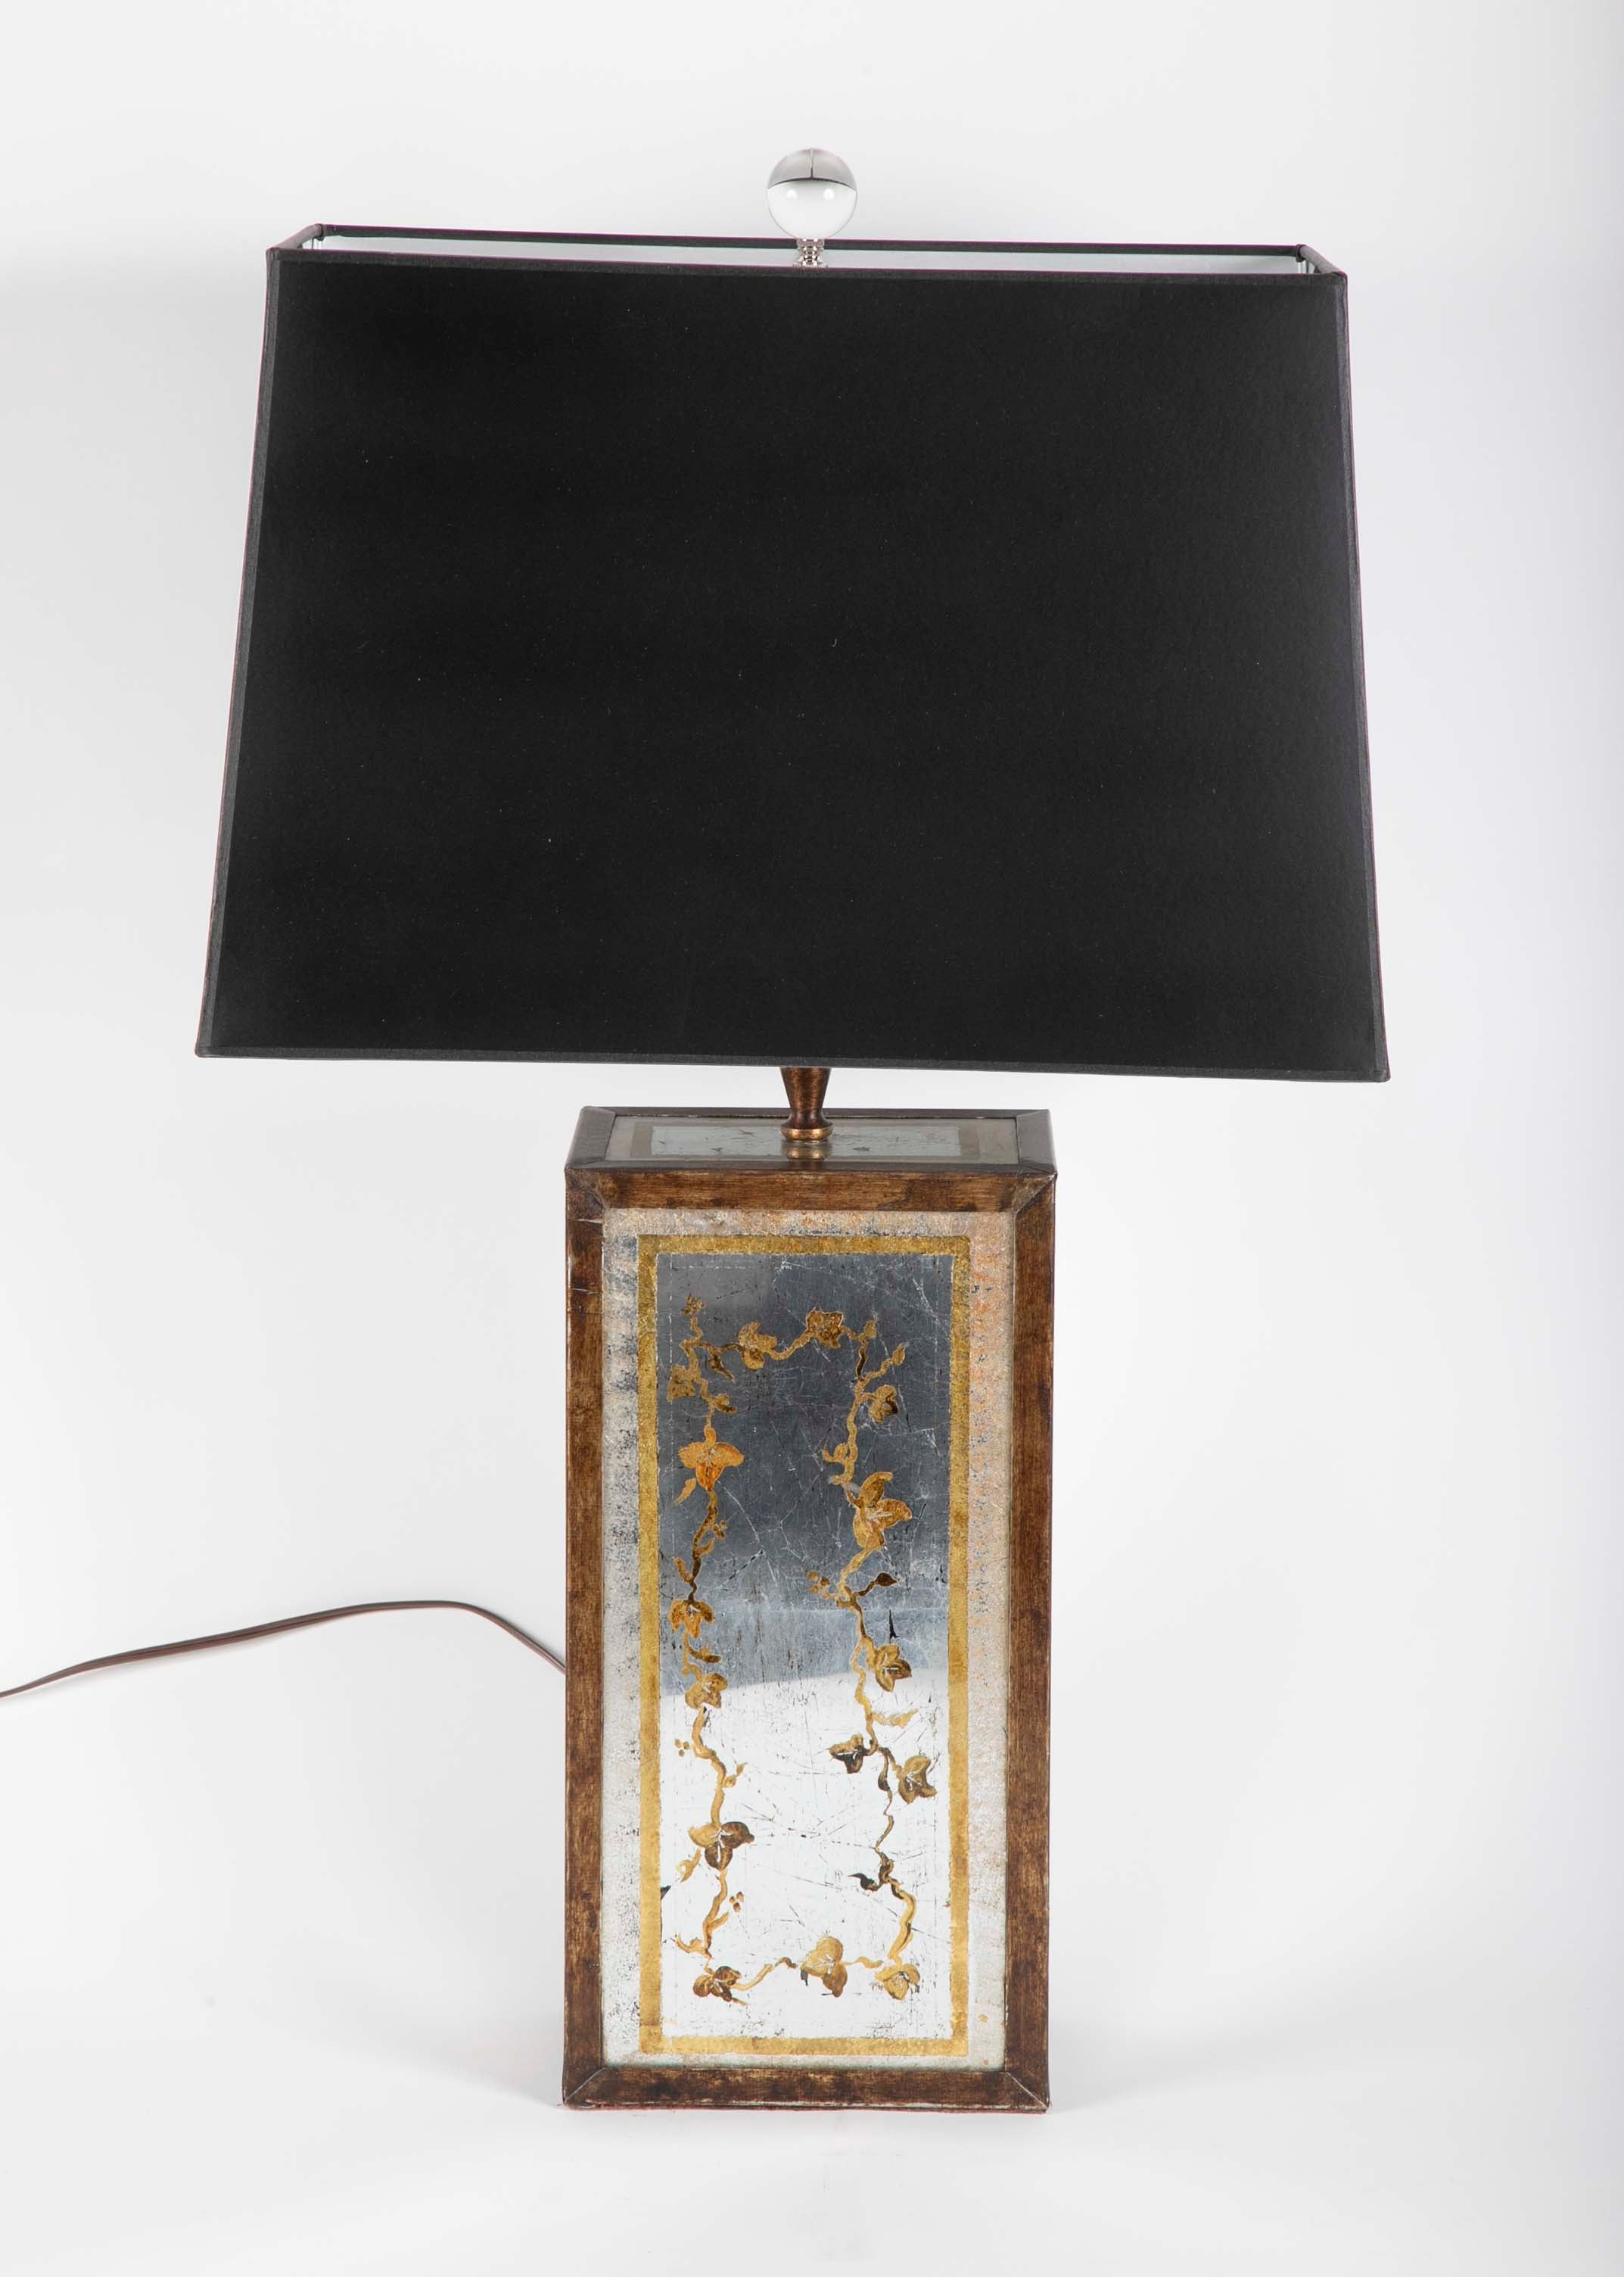 Pair of French Rectangular Eglomise Lamps